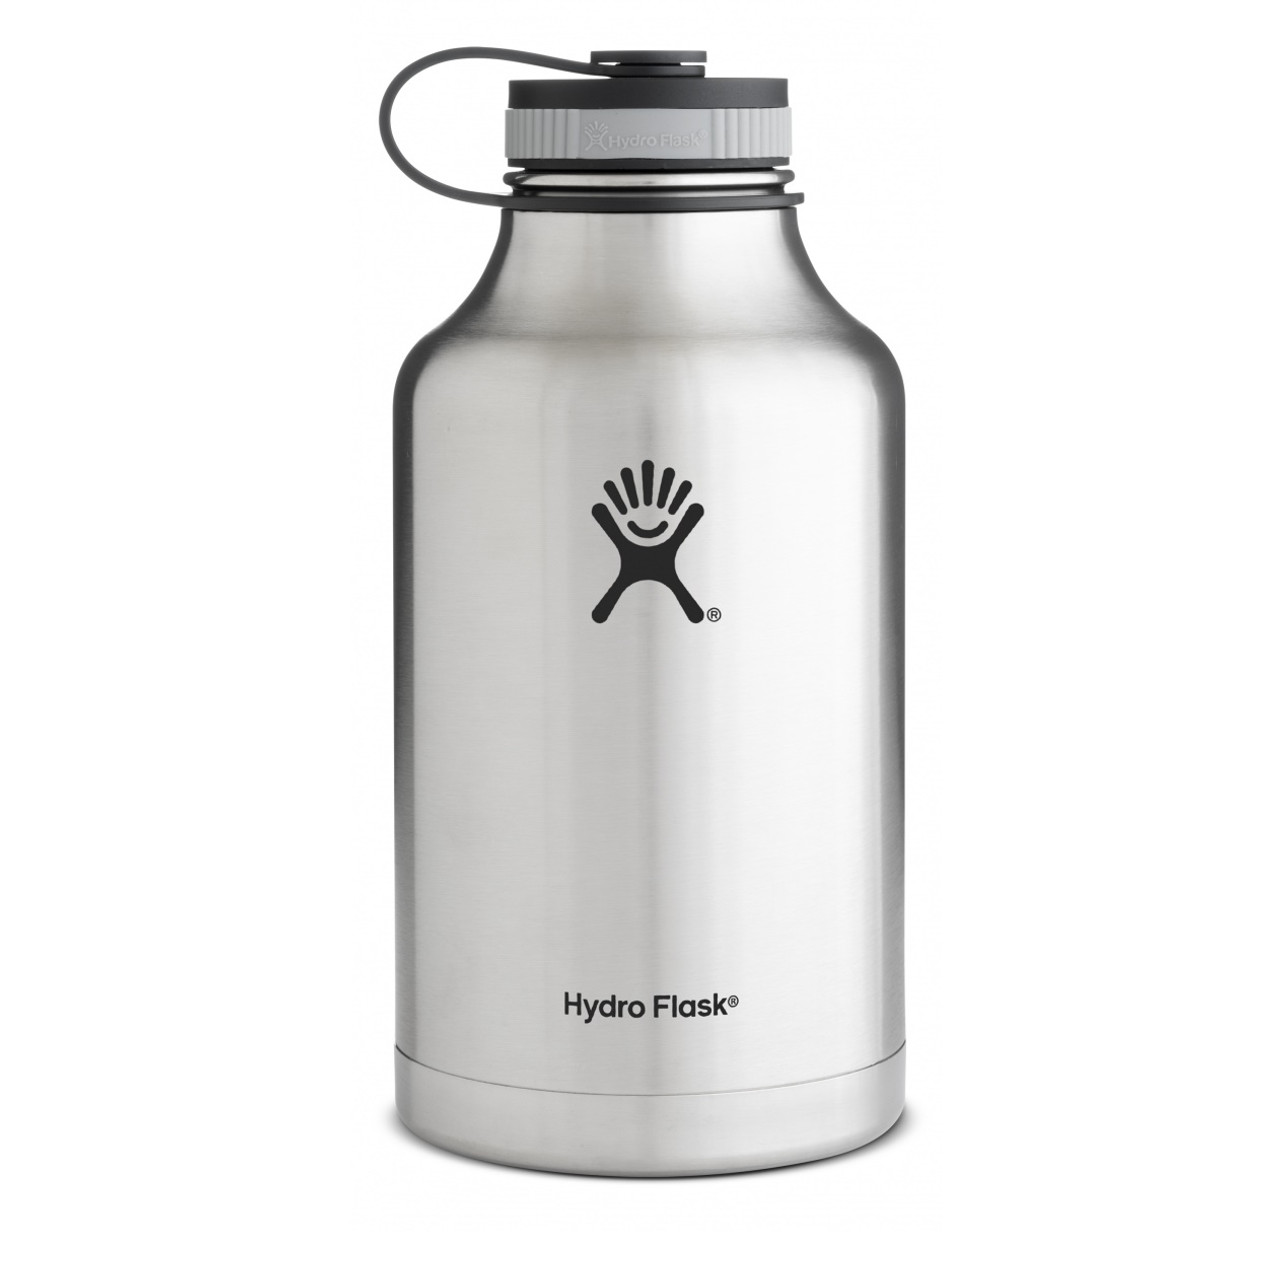 Hydro Flask 64 oz Wide Mouth Insulated Growler